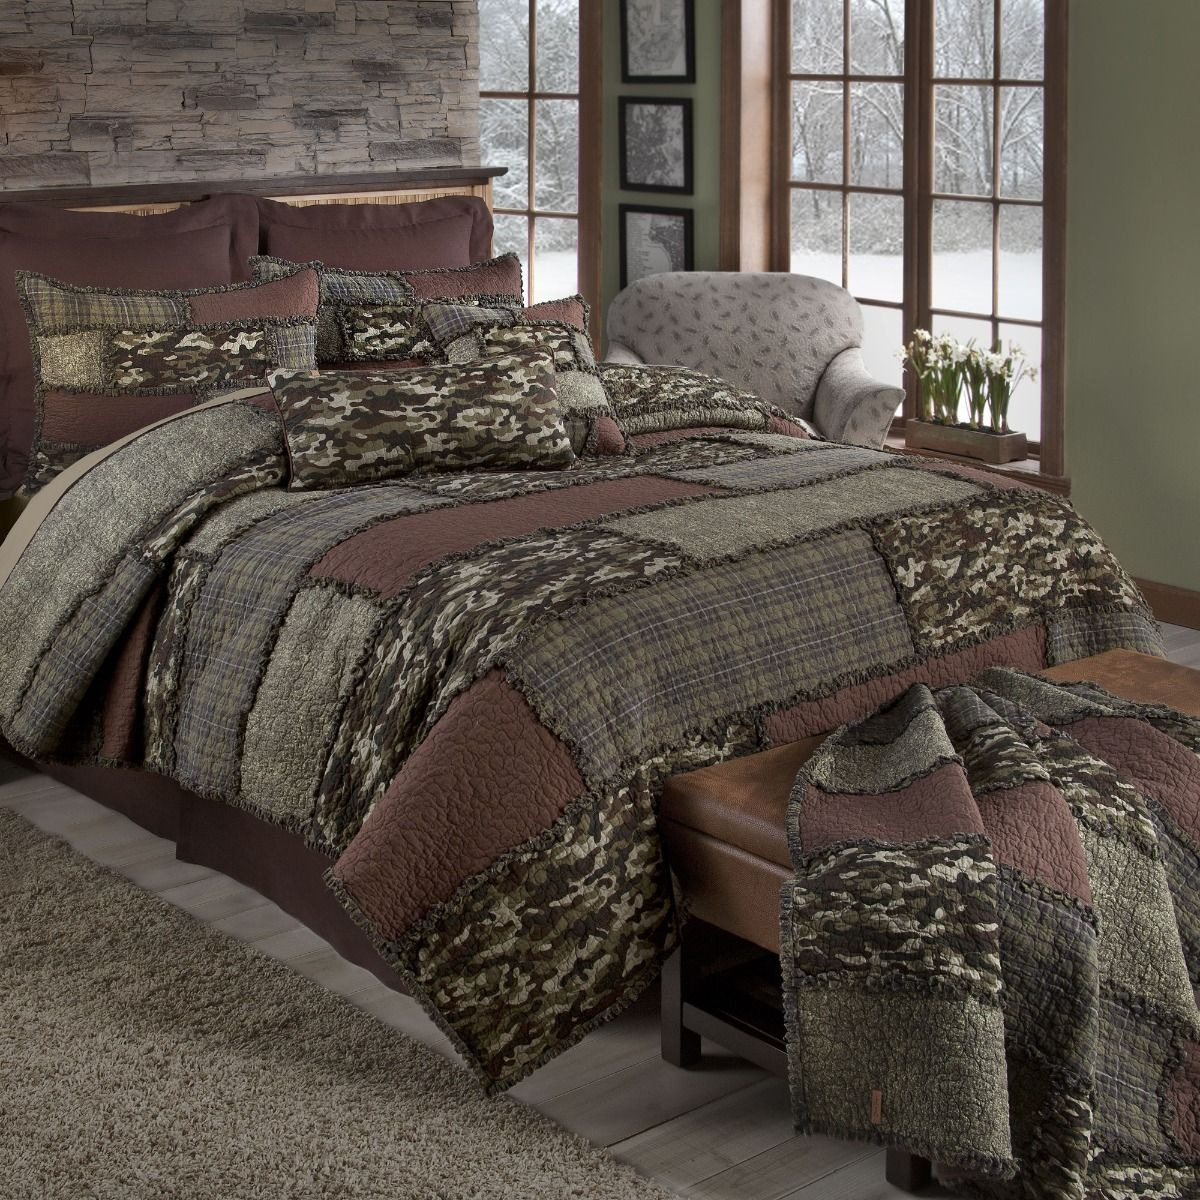 Camo Cobblestone Quilted Bedding Collection In 2020 Quilt Sets Mattress Furniture Cotton Quilt Set